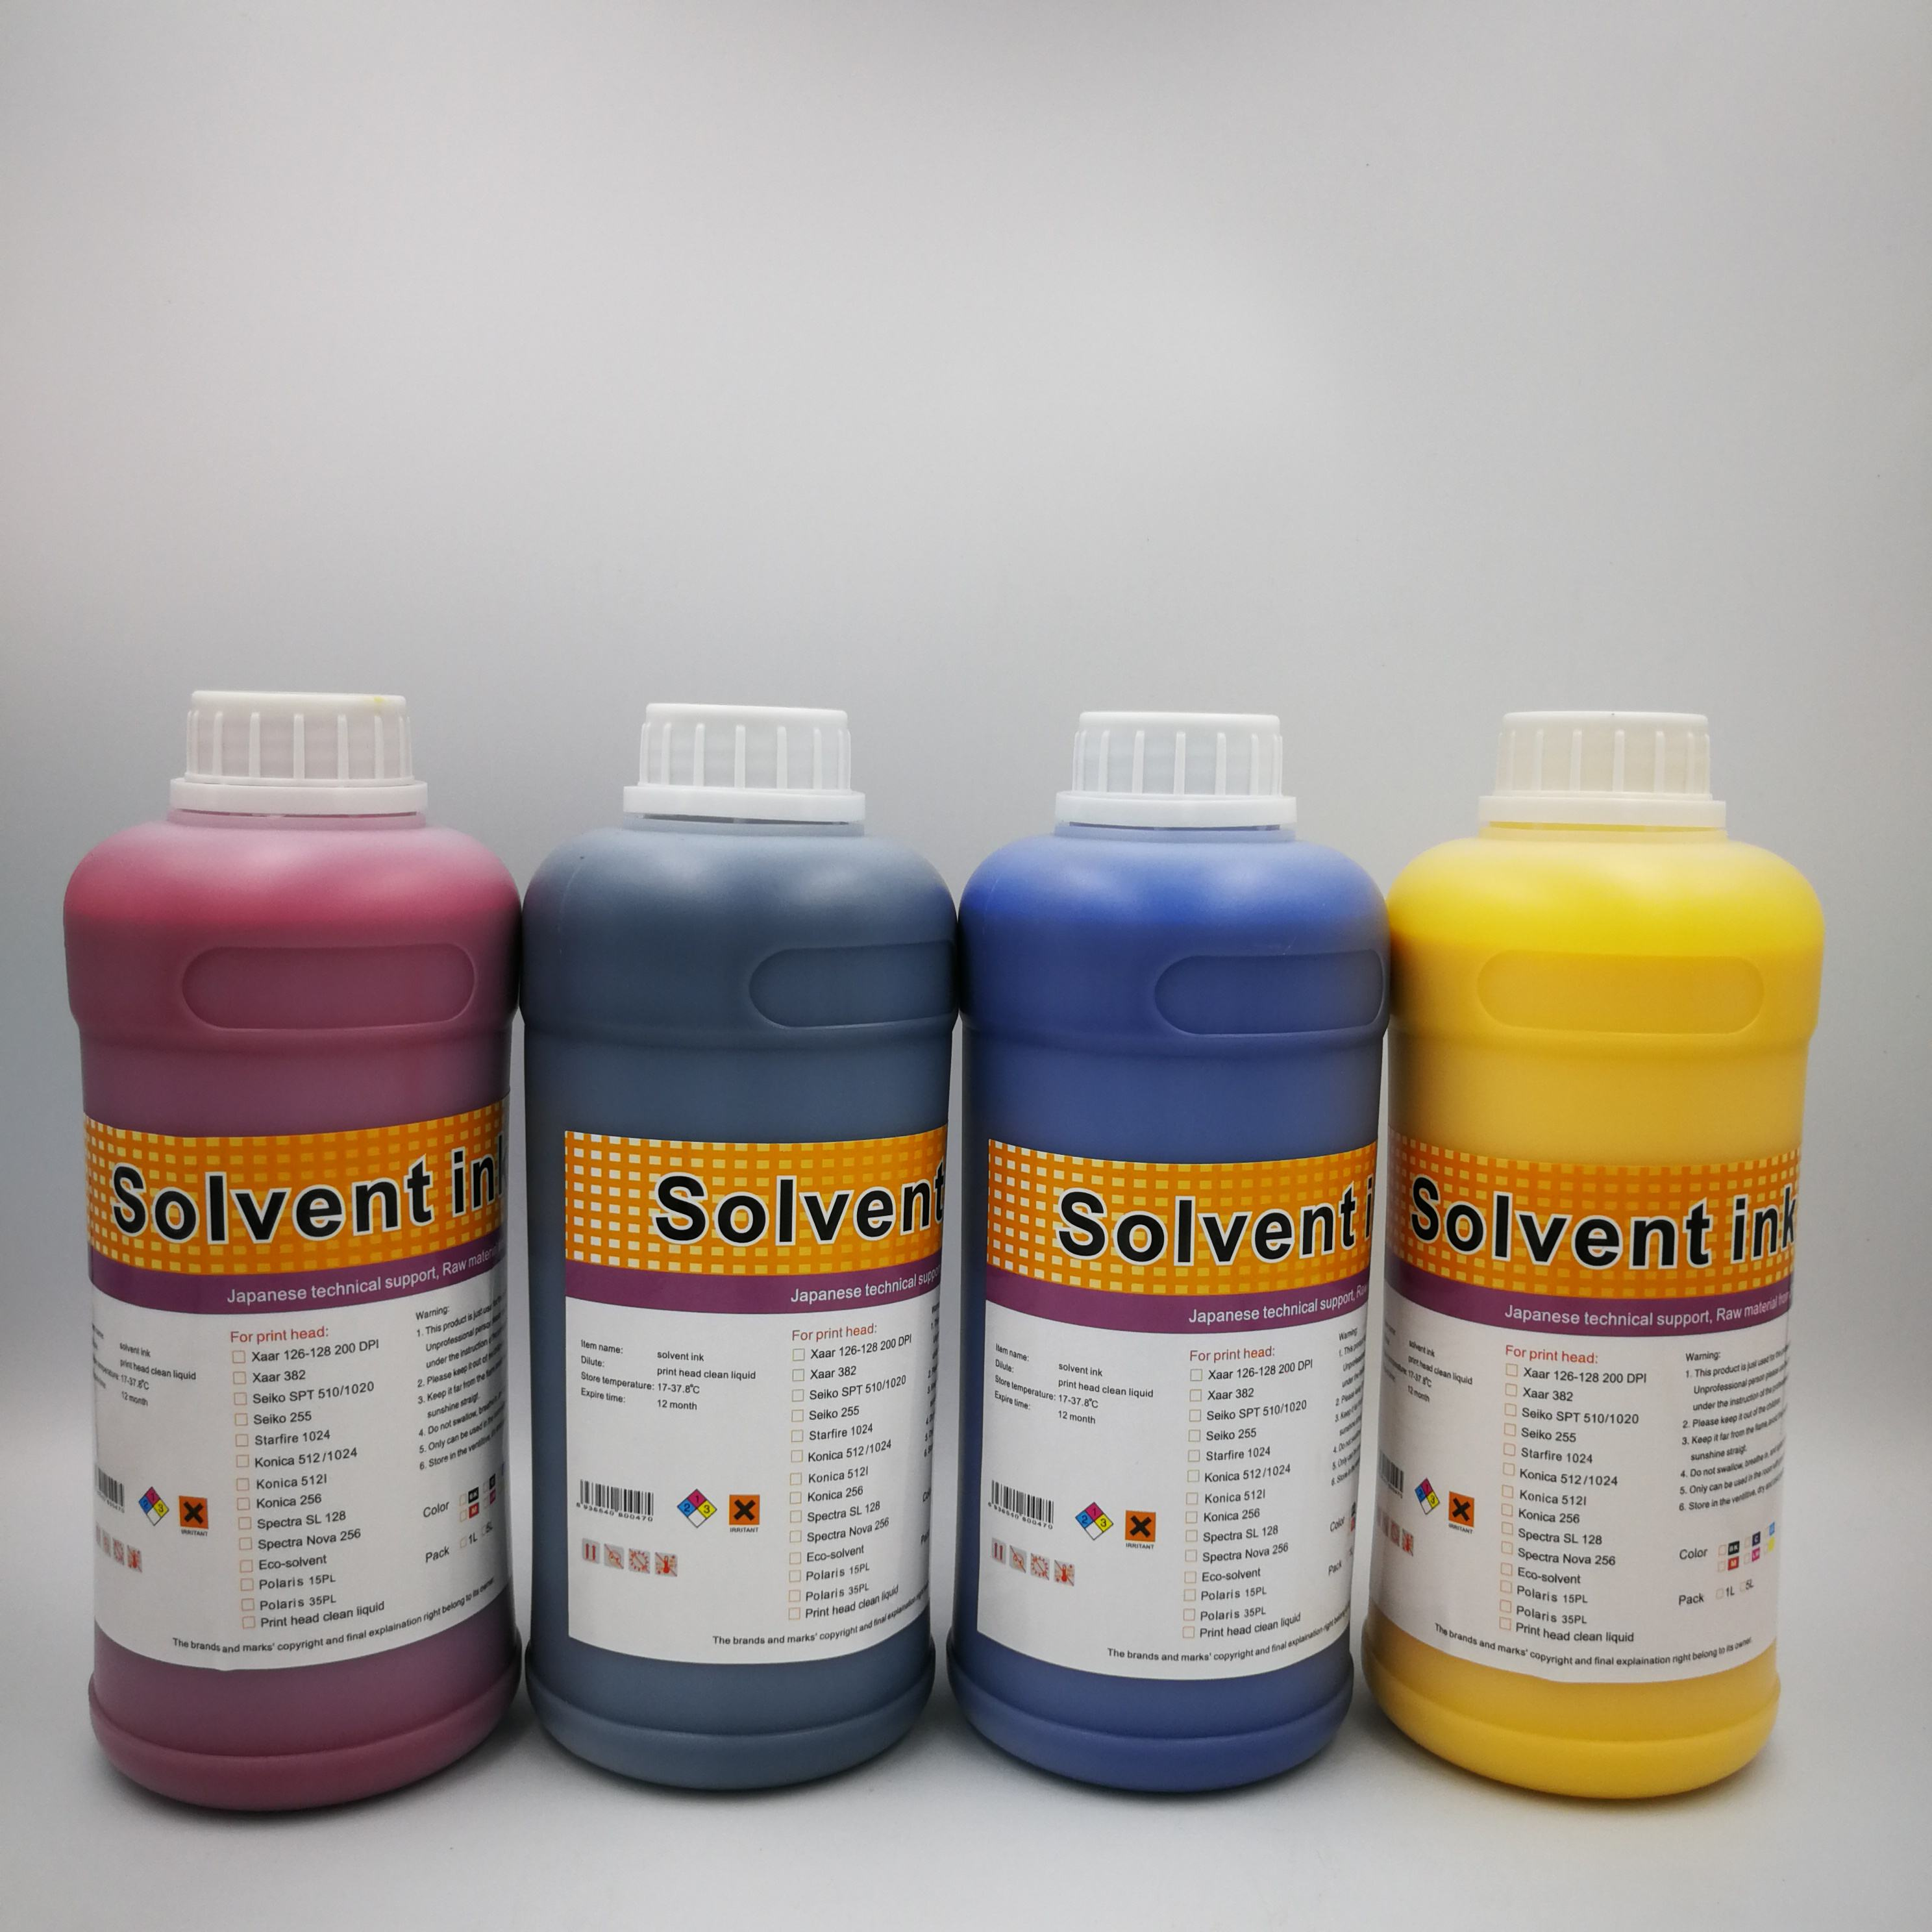 Infinity Challenger SK4 solvent ink for seiko 1020/510/255 printer head 35pl tinta solvente galaxy